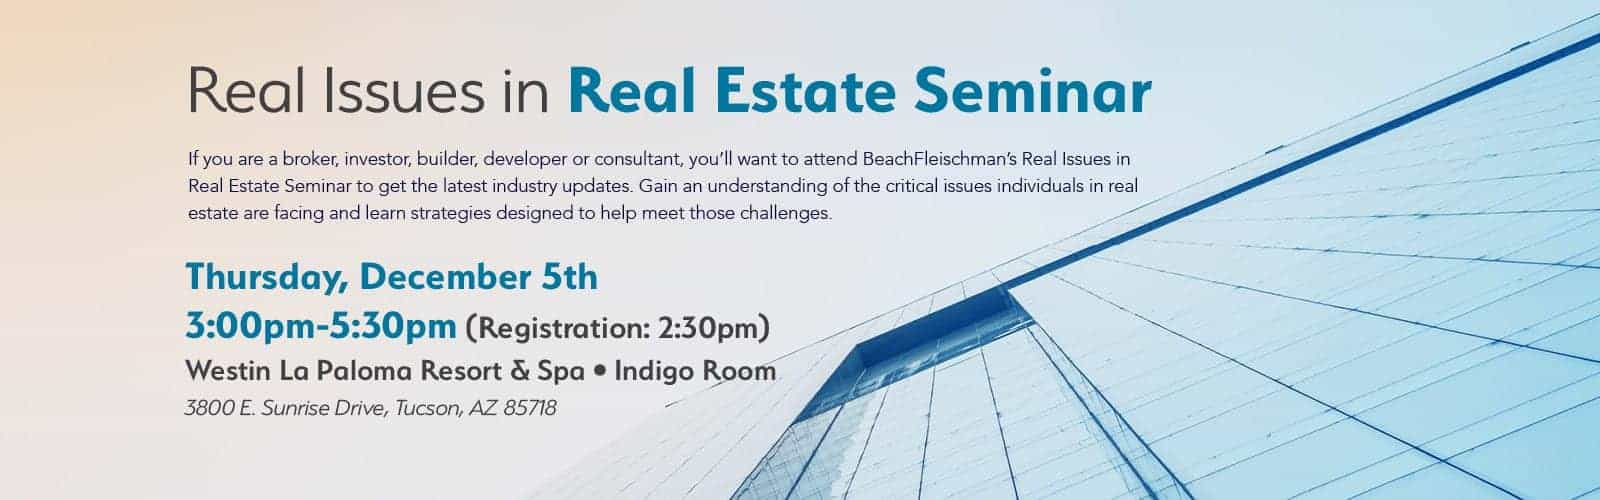 Real Issues in Real Estate Seminar 2019